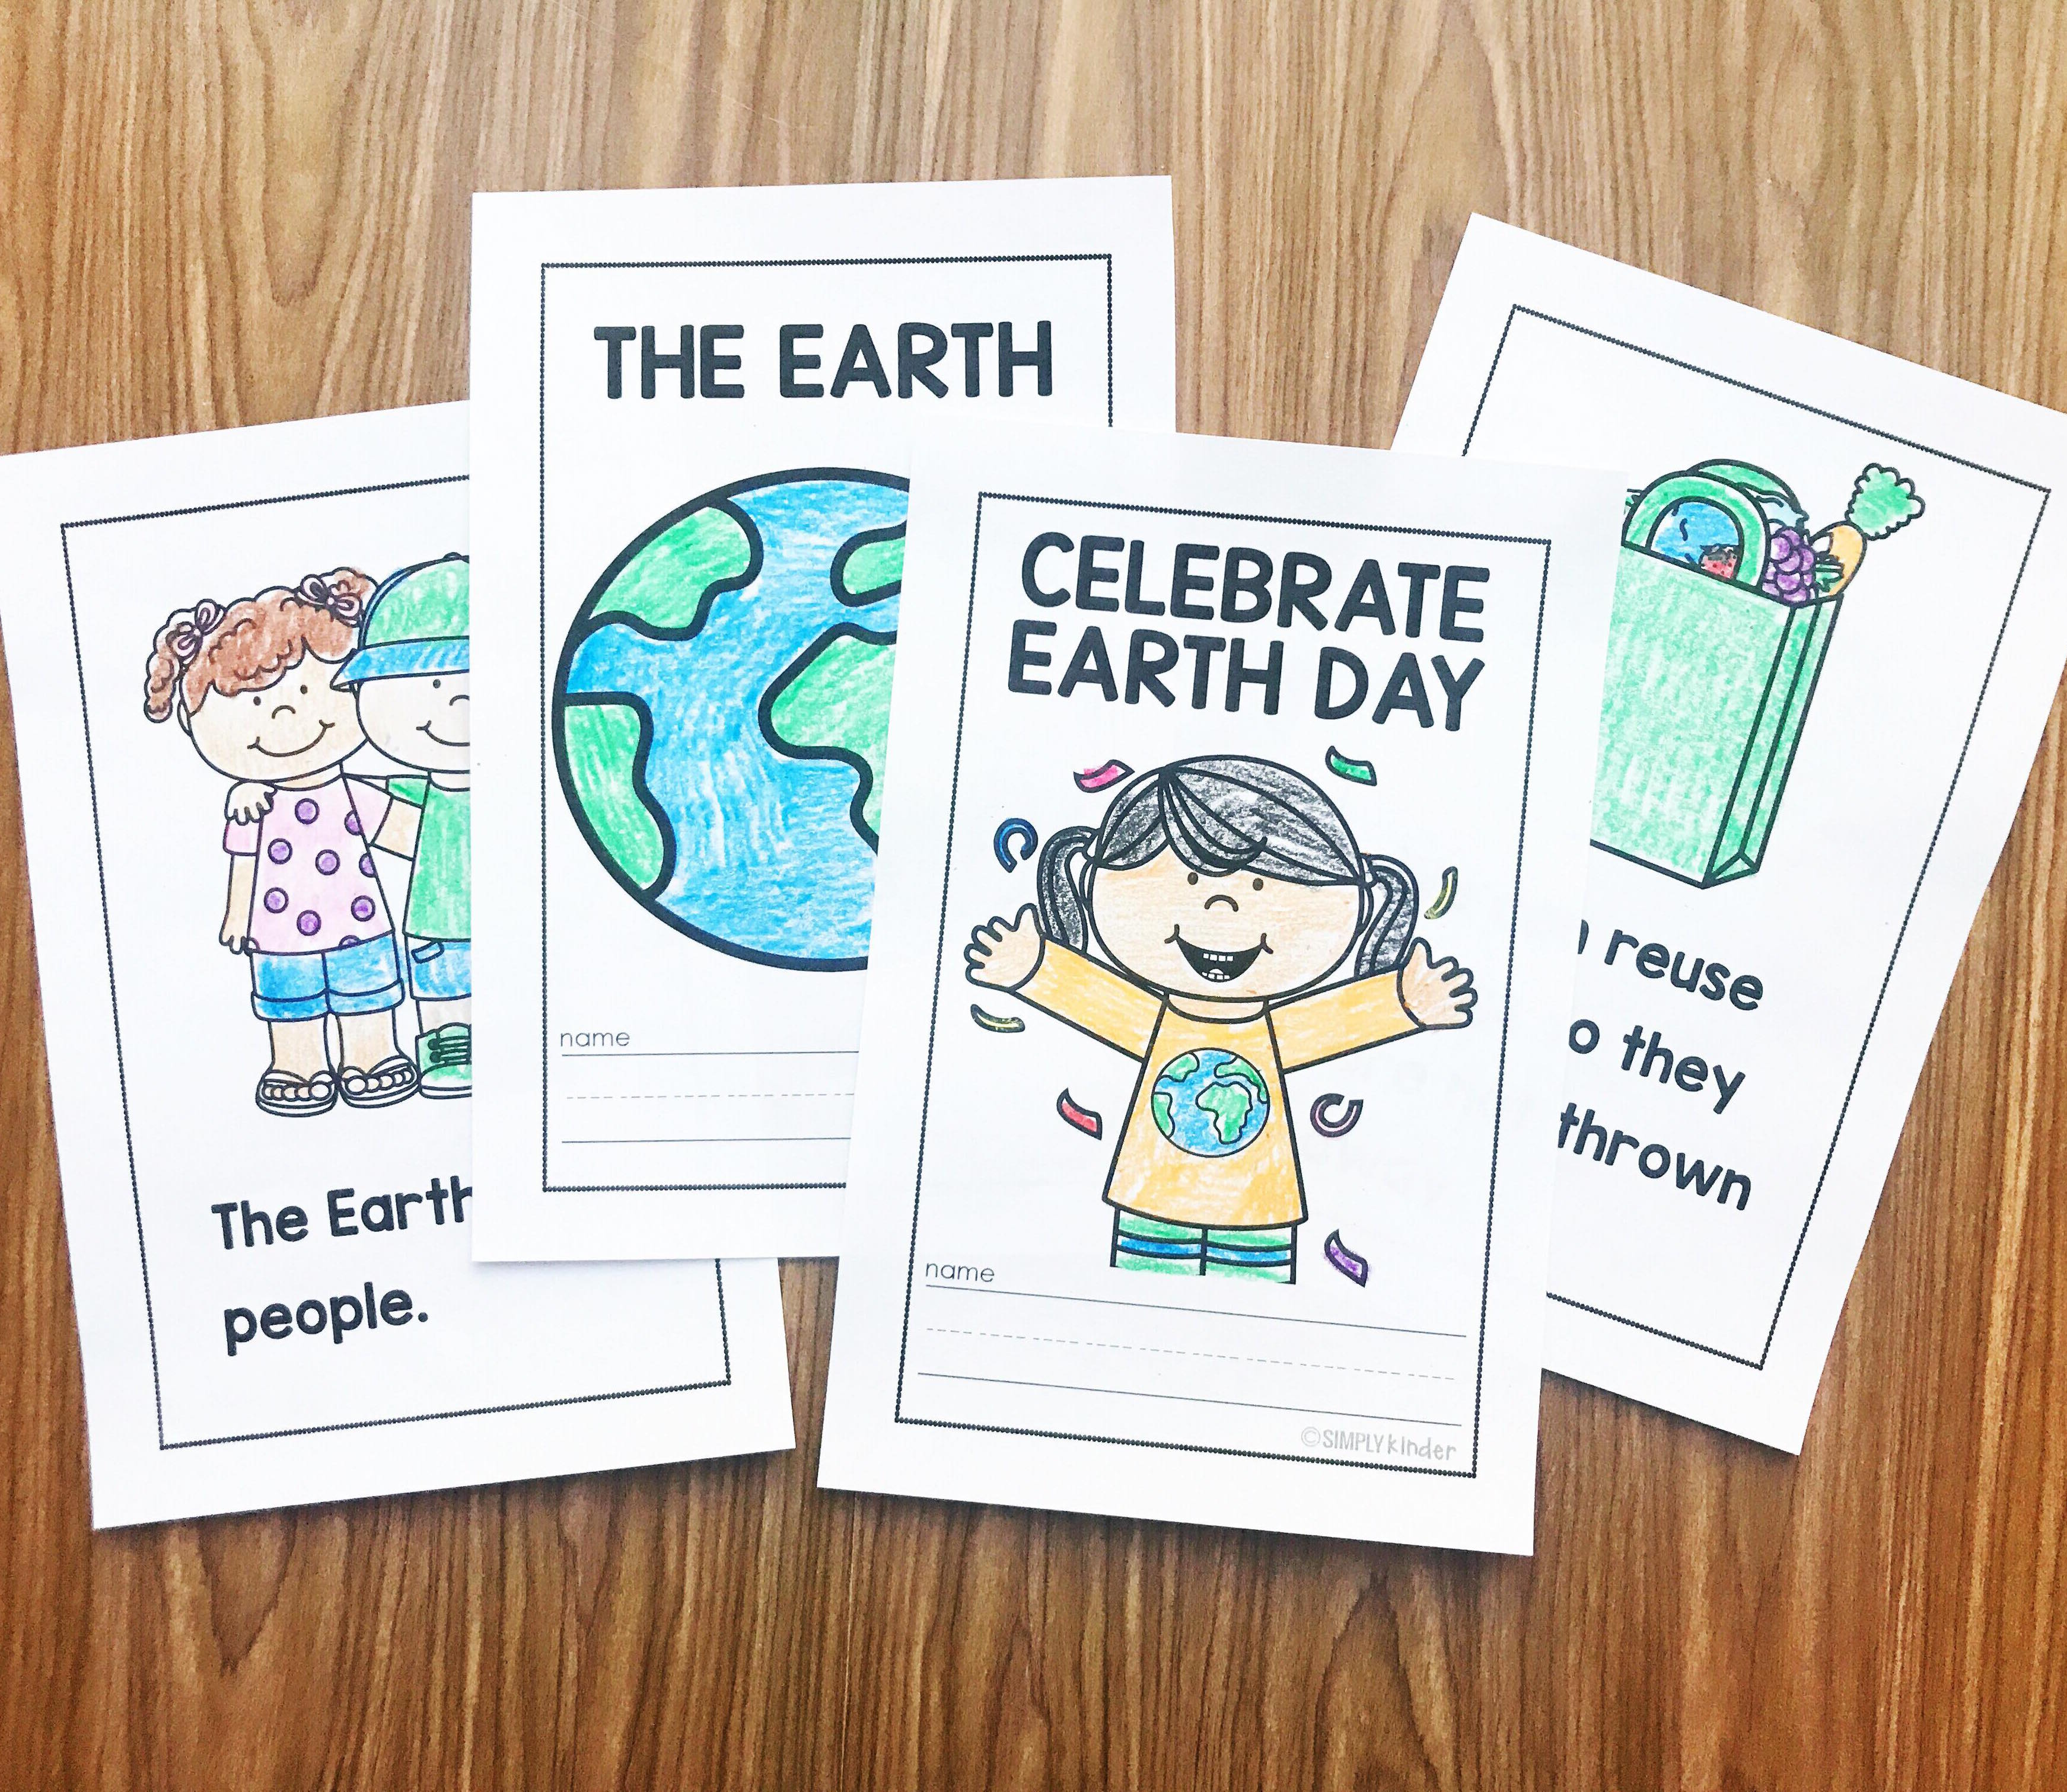 Learn about the Earth and Earth Day with these two easy to read books from Simply Kinder. Celebrate Earth Day talks about the holiday and why we celebrate. It discusses what kids can do to help. And The Earth is a super easy book about what is found on Earth. Both books are perfect for your preschool, kindergarten, and first grade students.